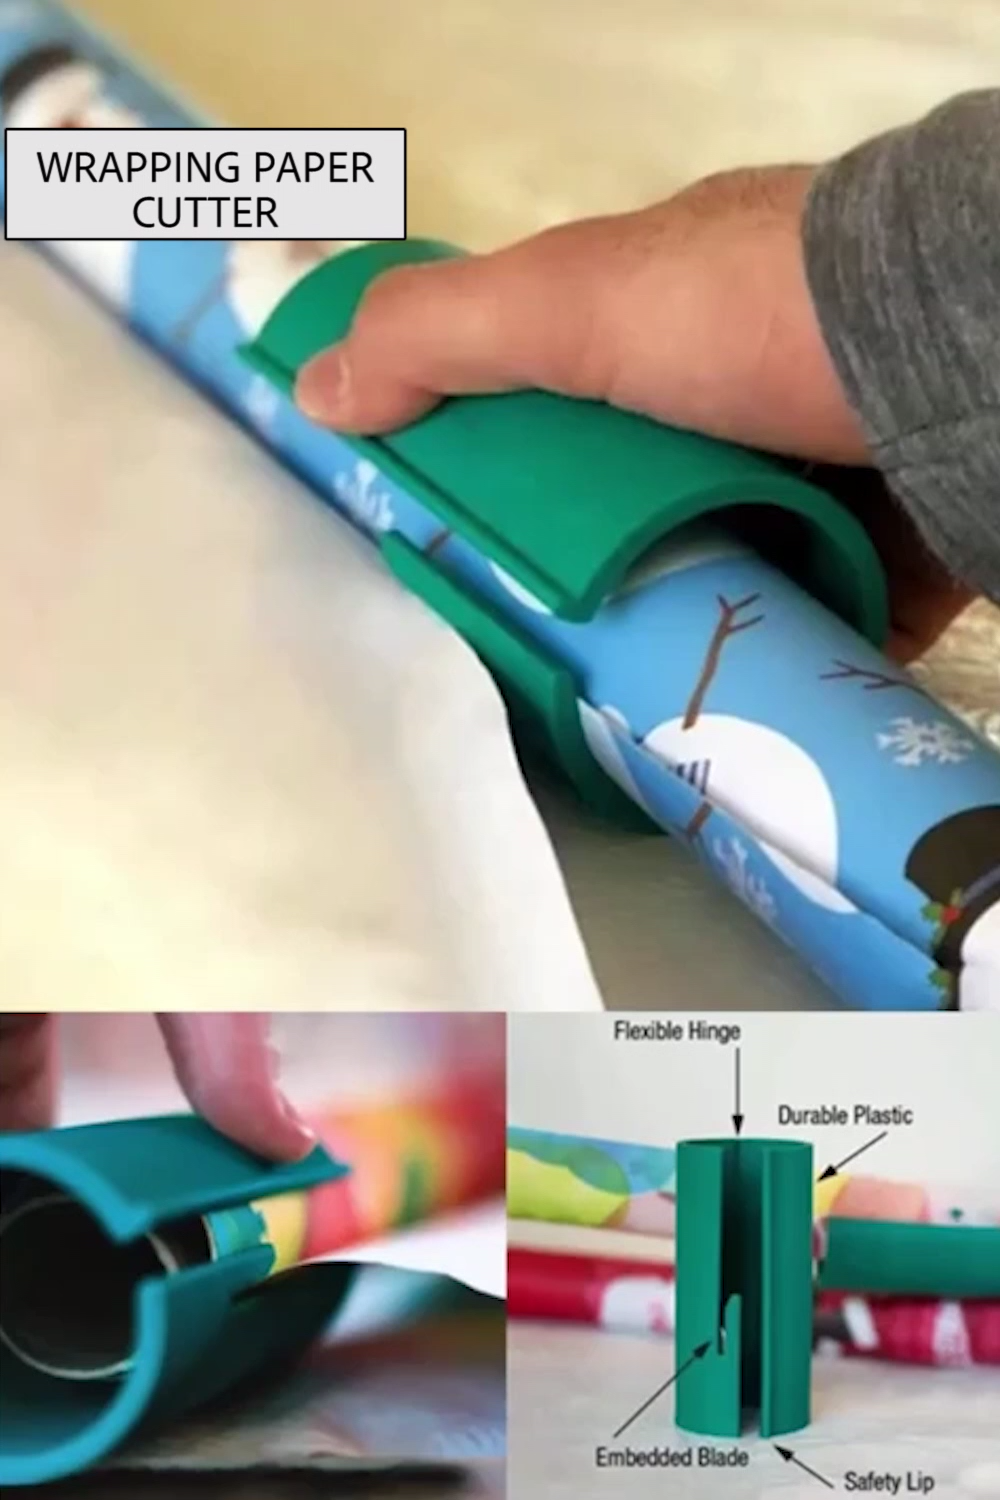 50% OFF Wrapping Paper Cutter